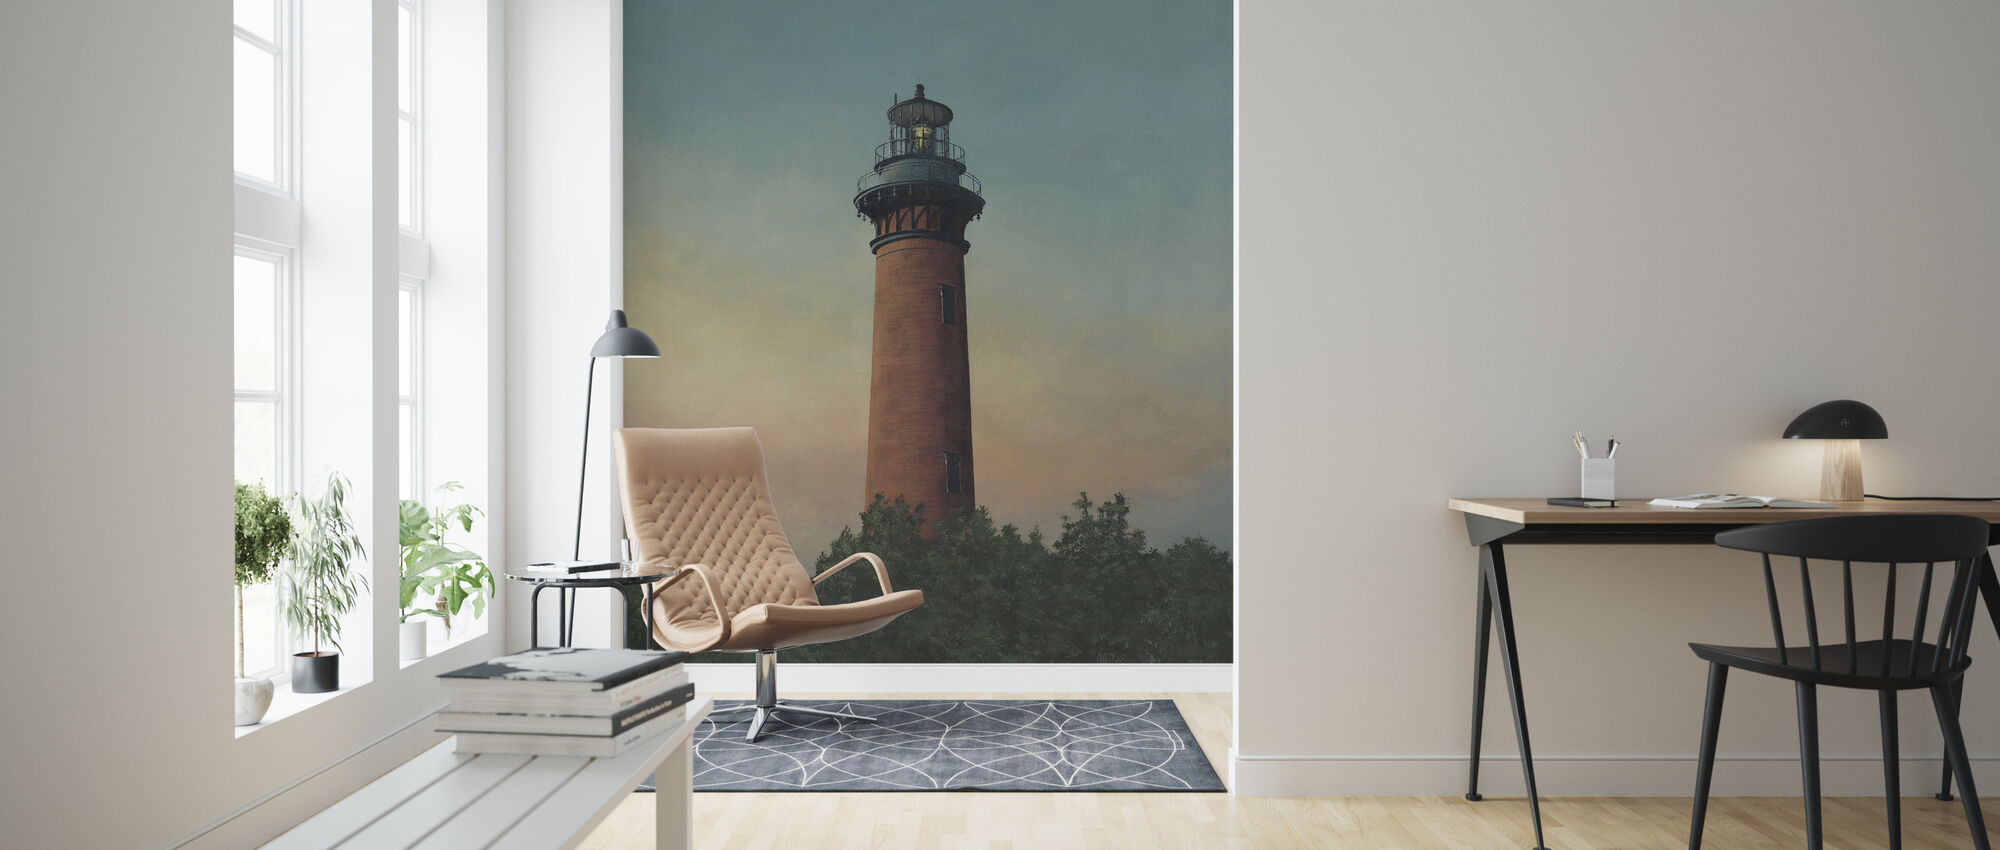 Currituck Beach Lighthouse - Wallpaper - Living Room